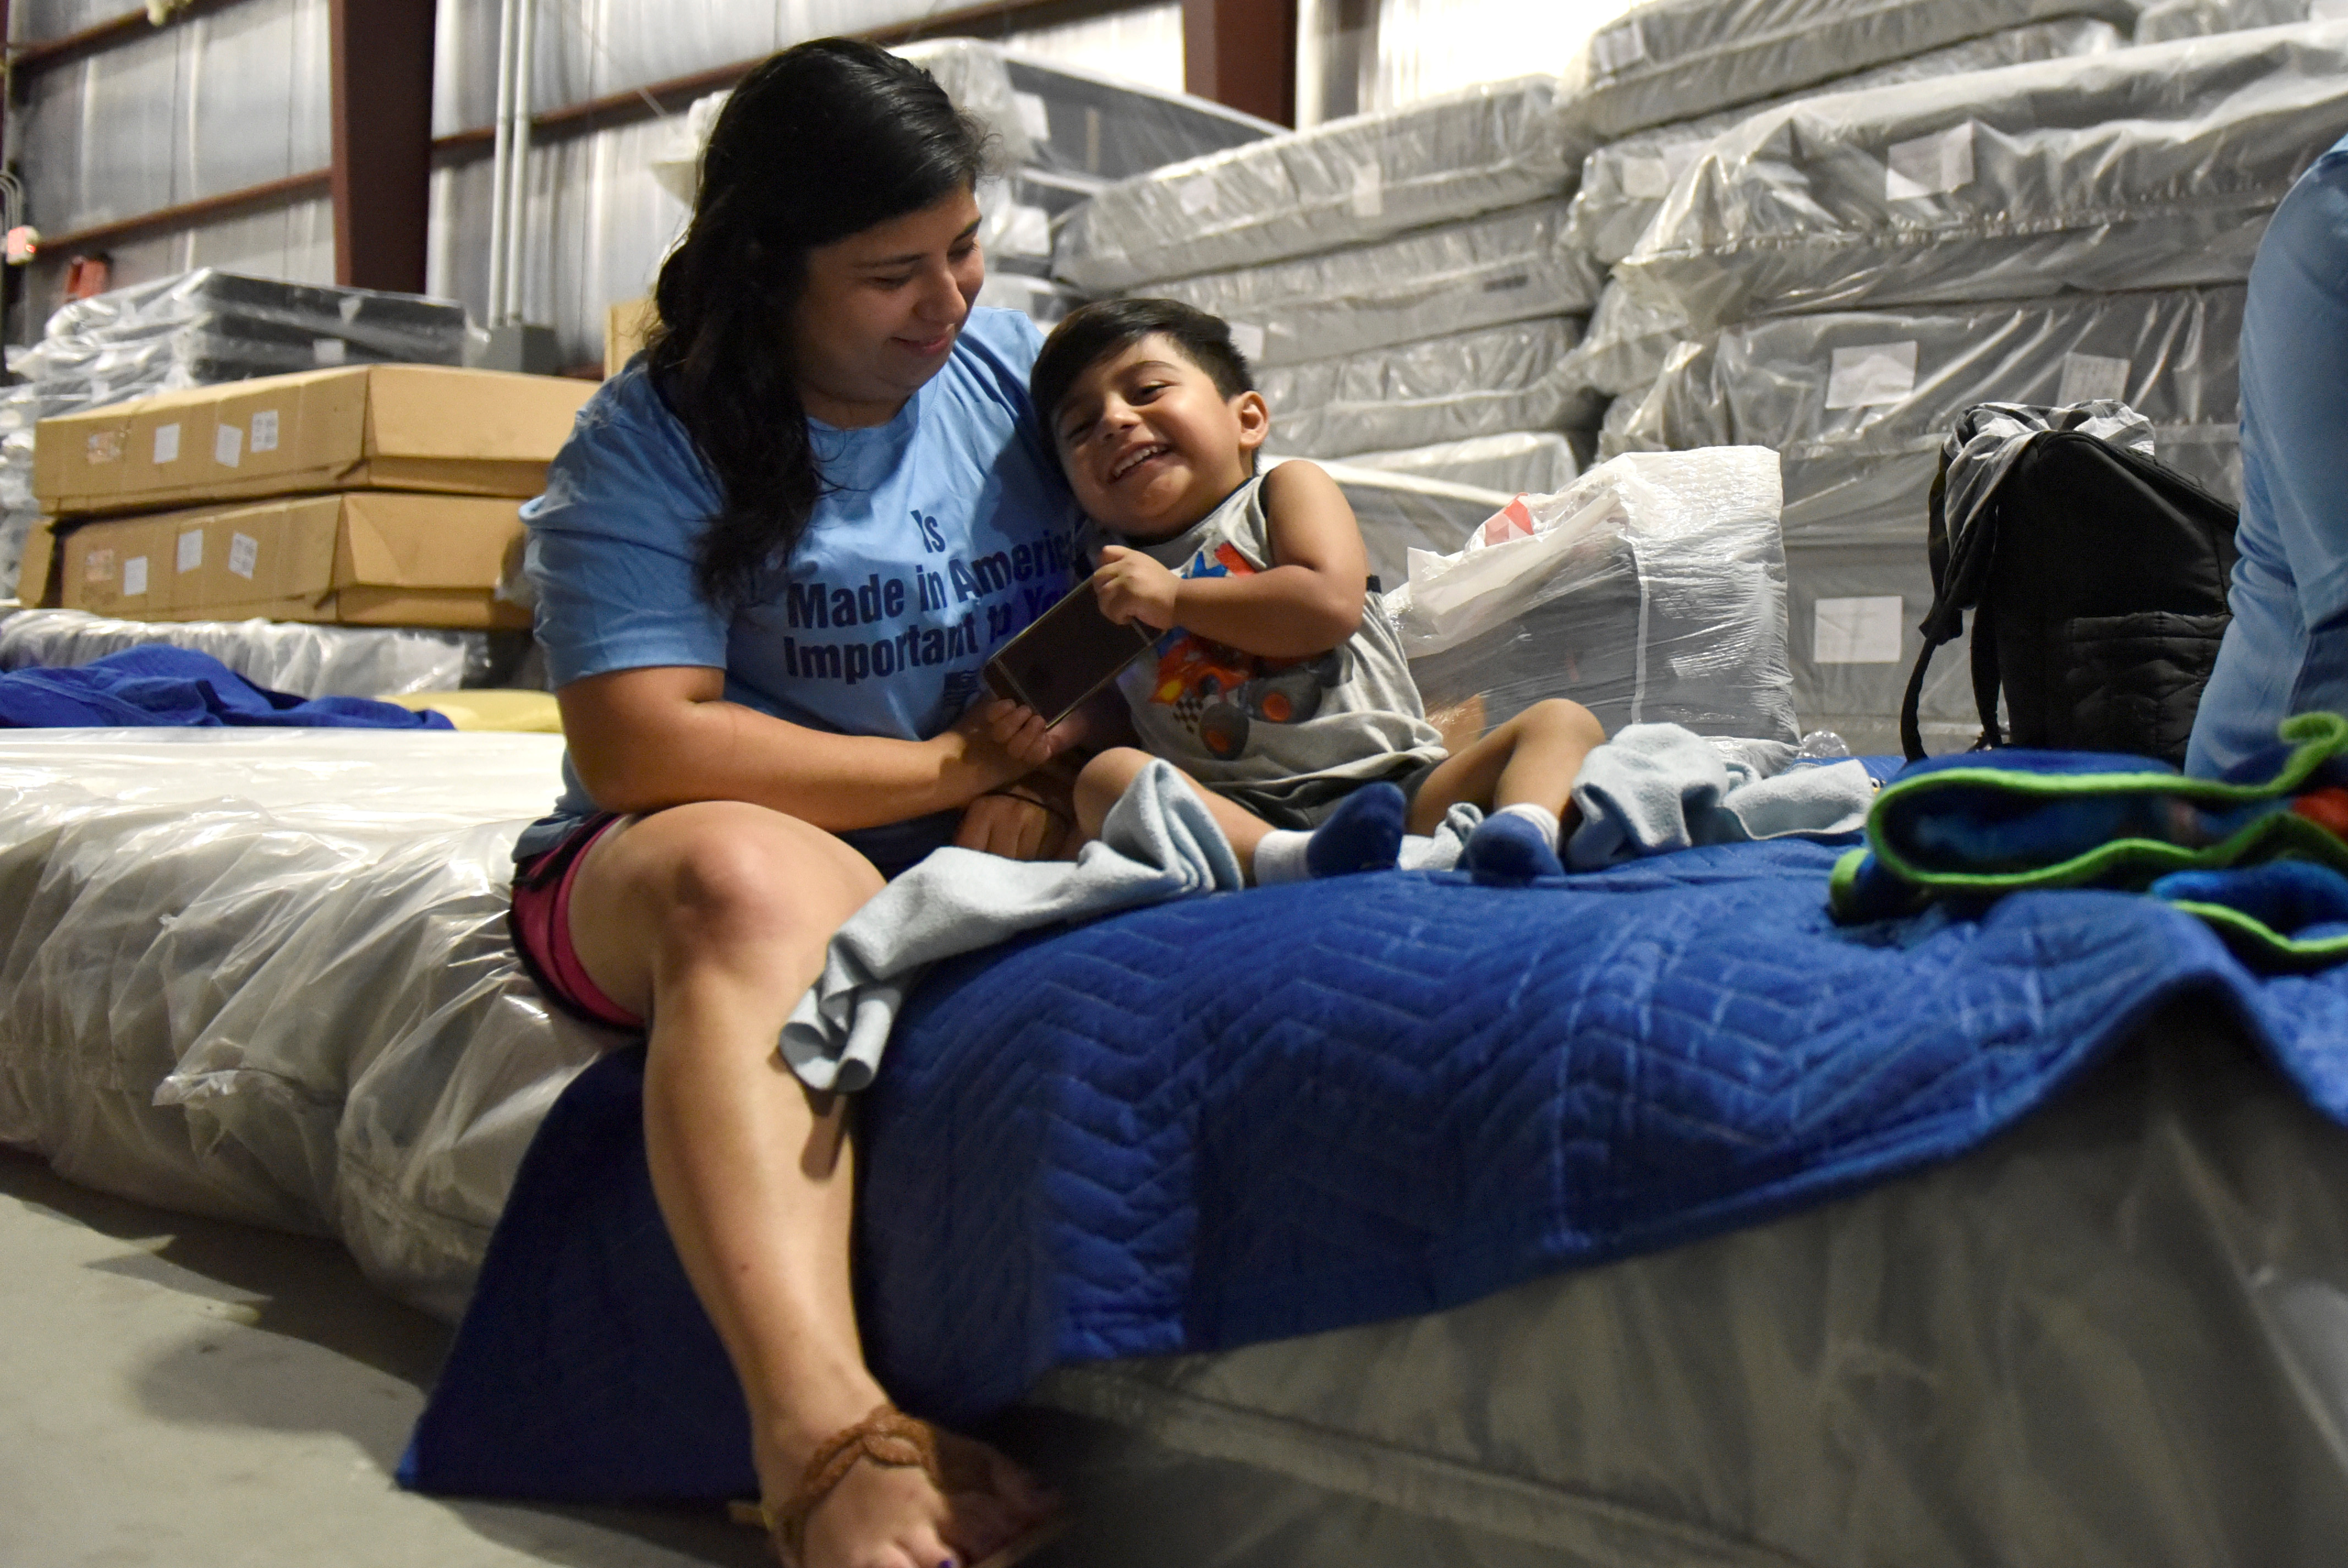 Maria Lopez plays with her son Rafael Lopez, 3, in the warehouse at Gallery Furniture where they have been staying after evacuating their flooded home over the weekend, in Houston, Texas, U.S., August 29, 2017.